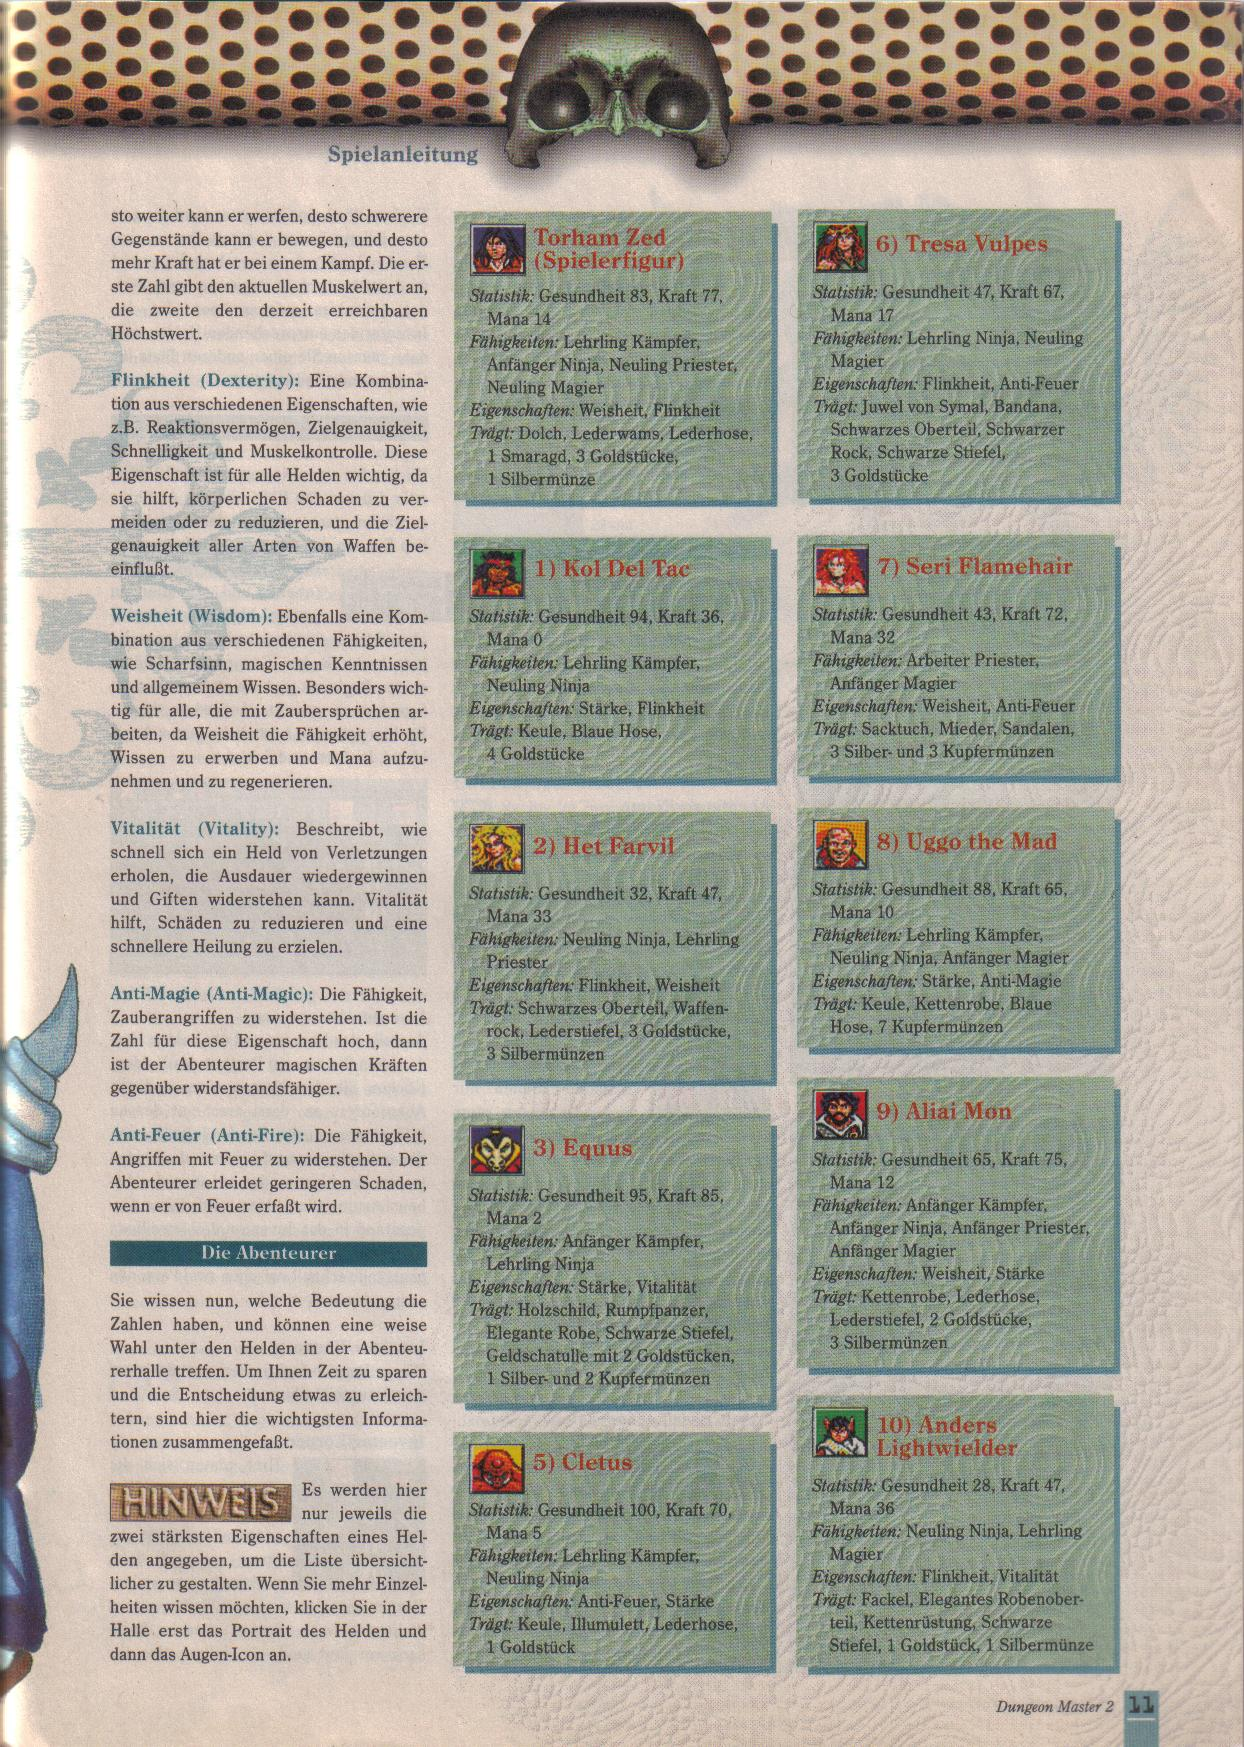 Dungeon Master II for PC (German, Best Seller Games) Page 11